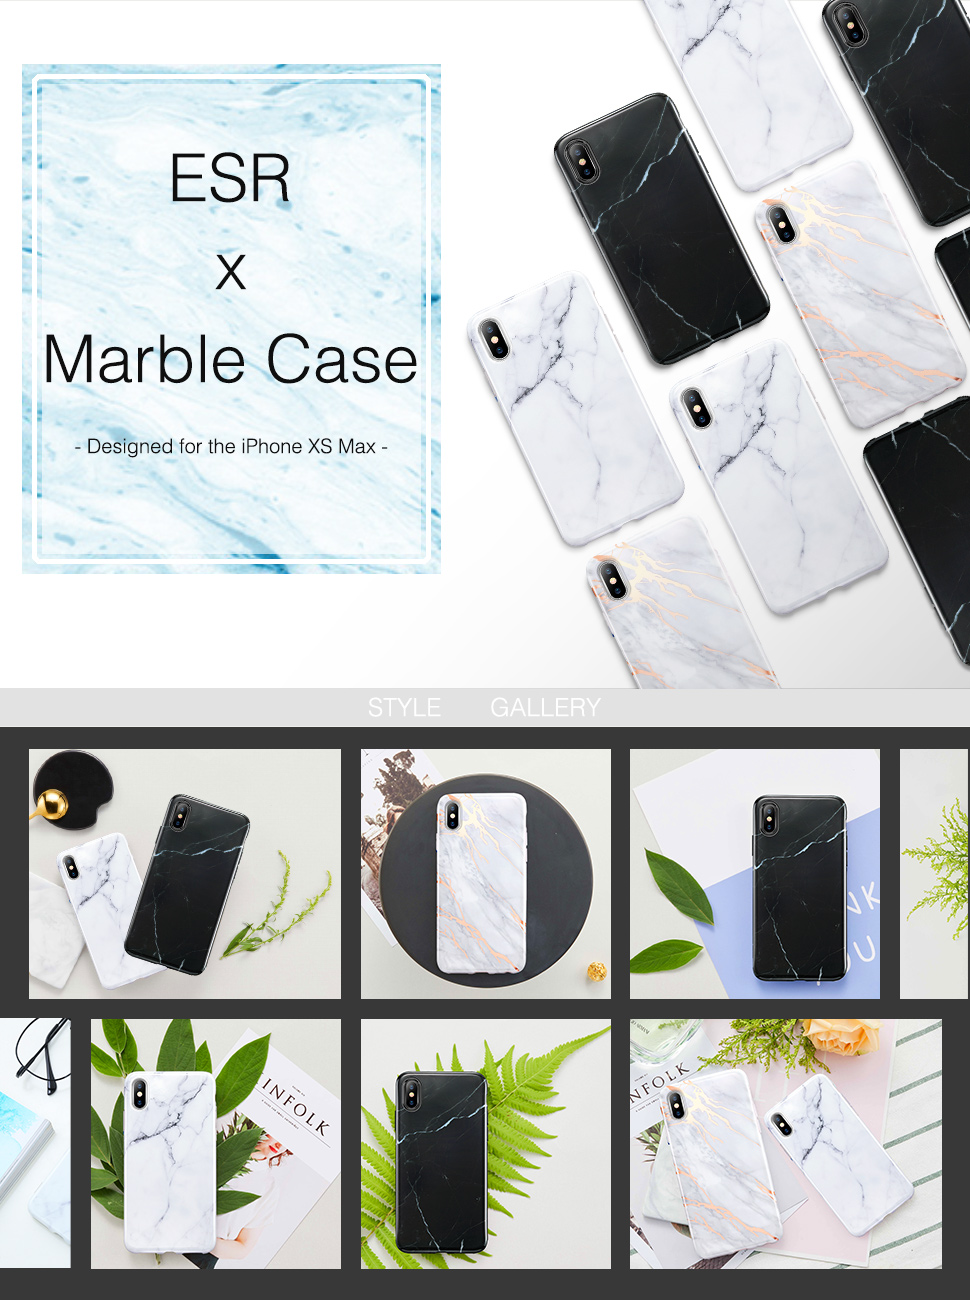 ESR Marble case for iPhone XS Max, Gohub Shop